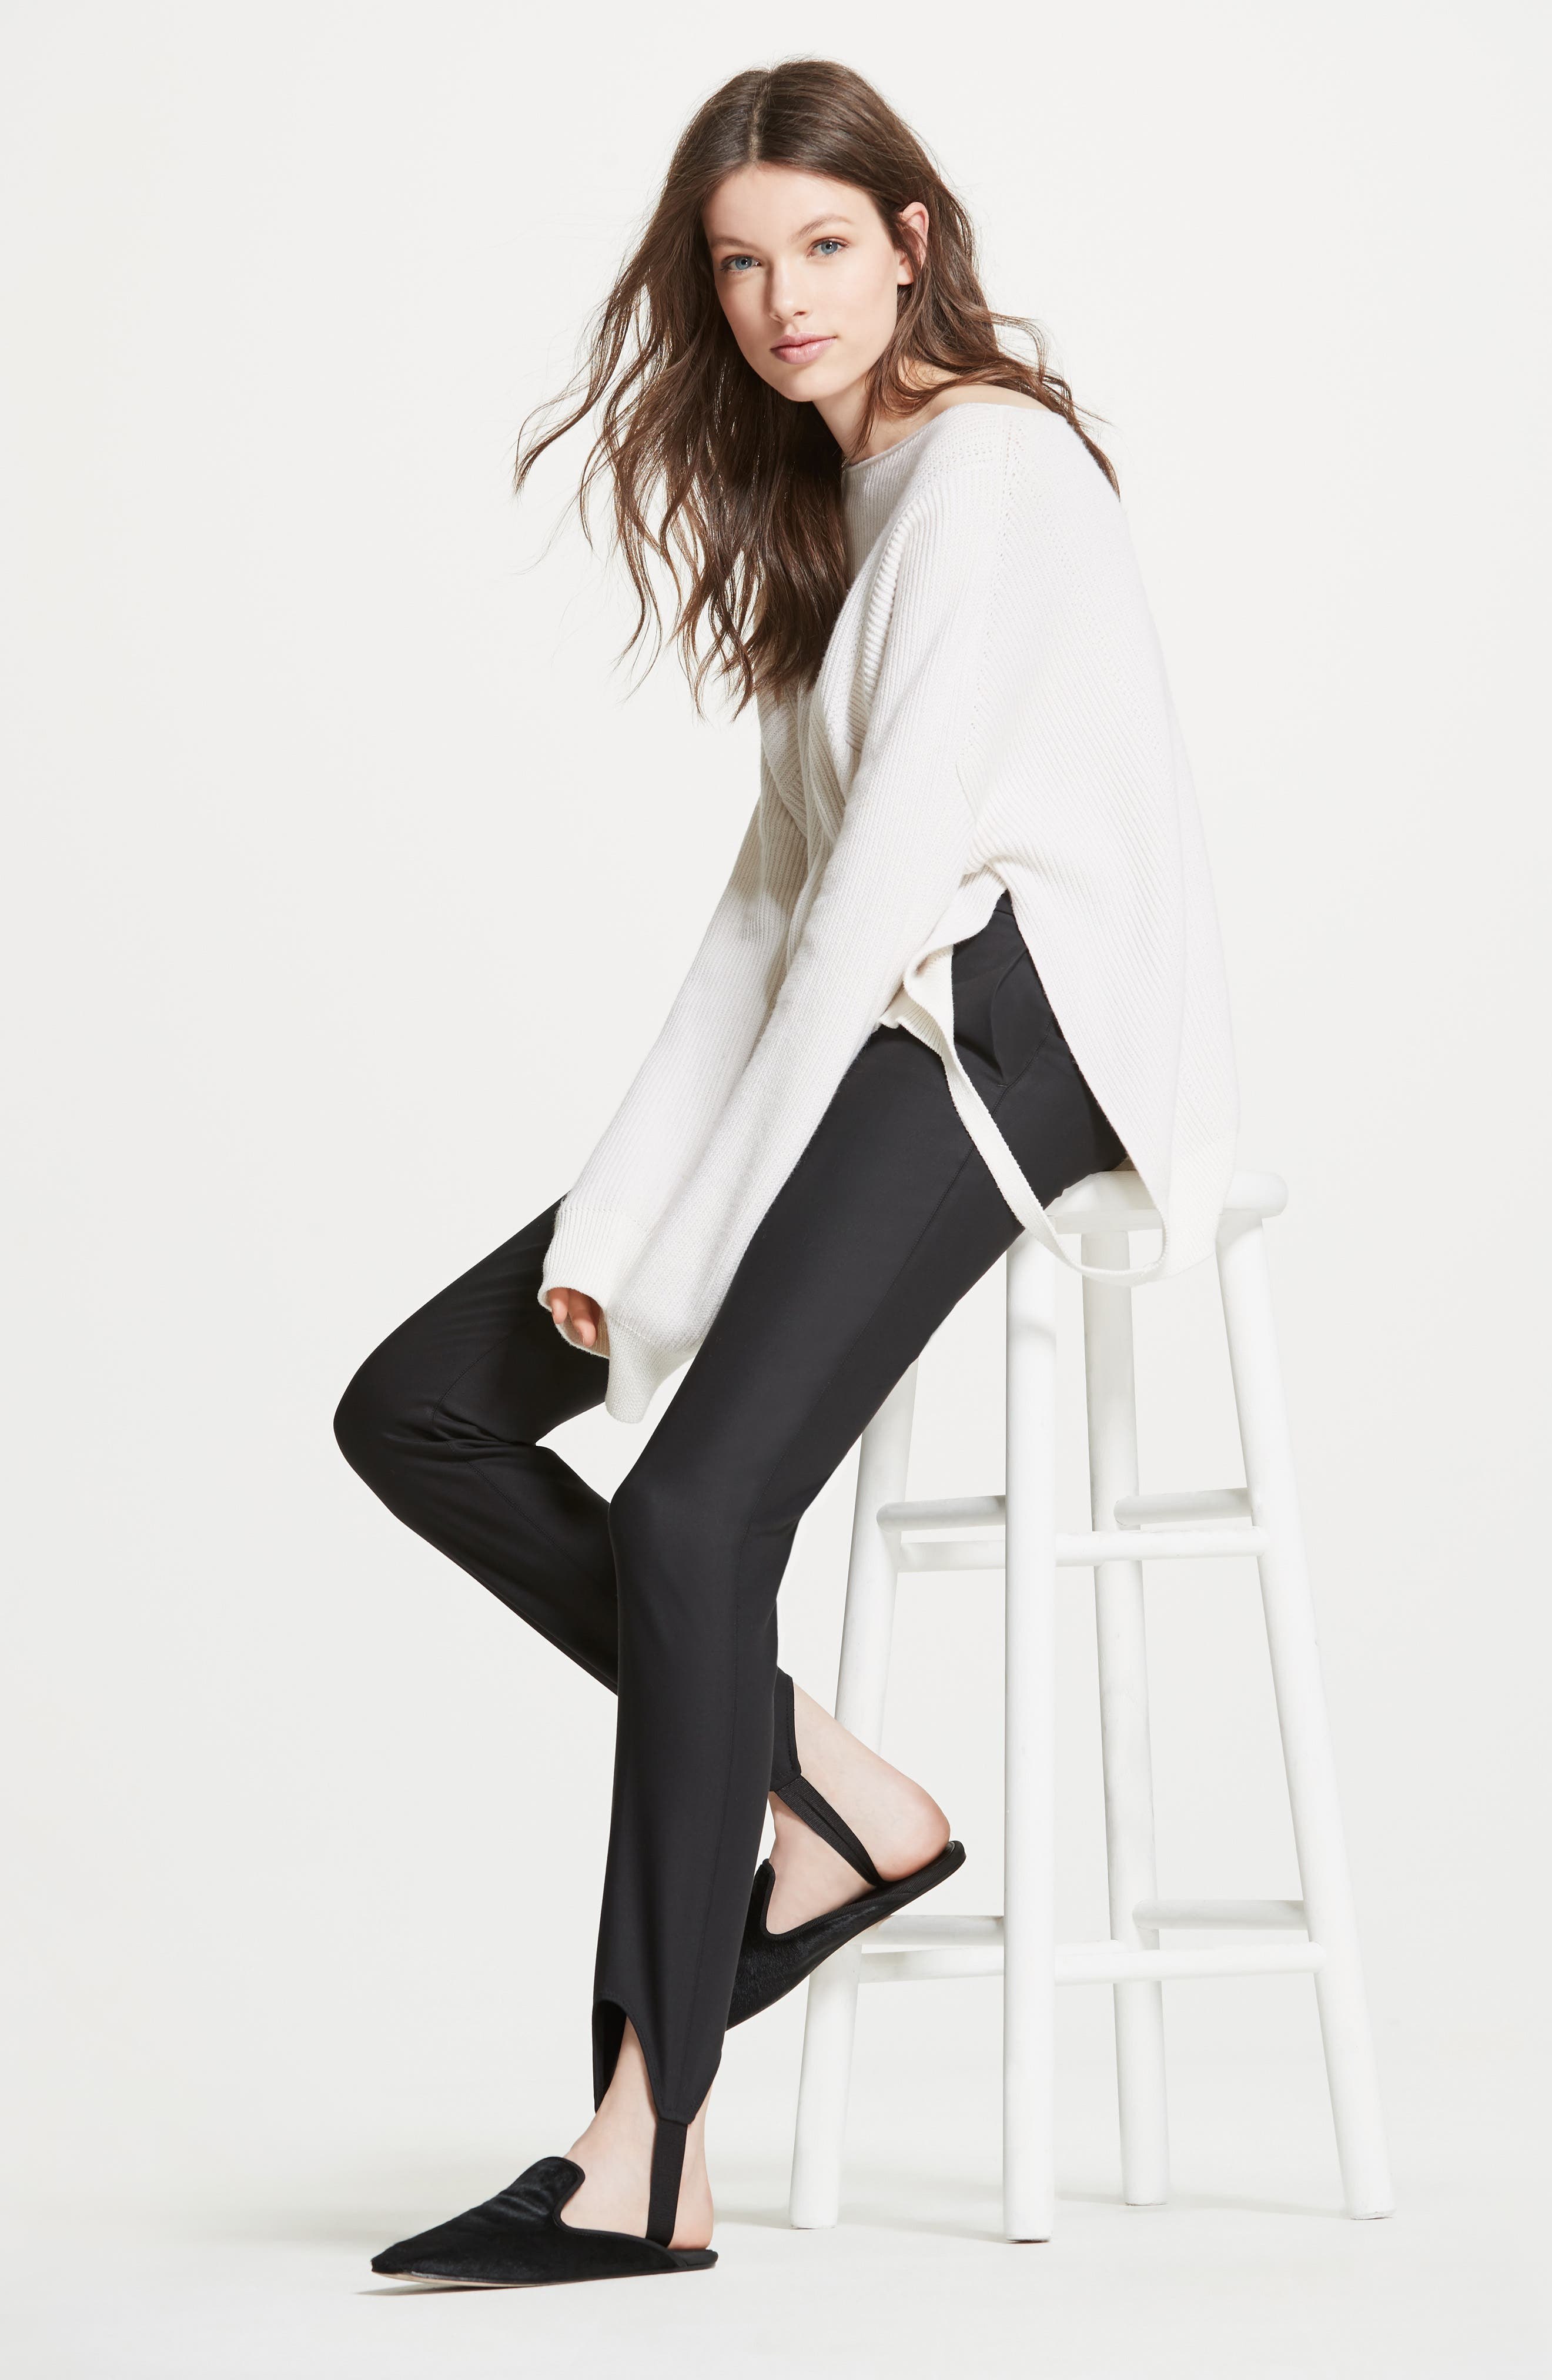 Helmut Lang Pullover & Pants Outfit with Accessories